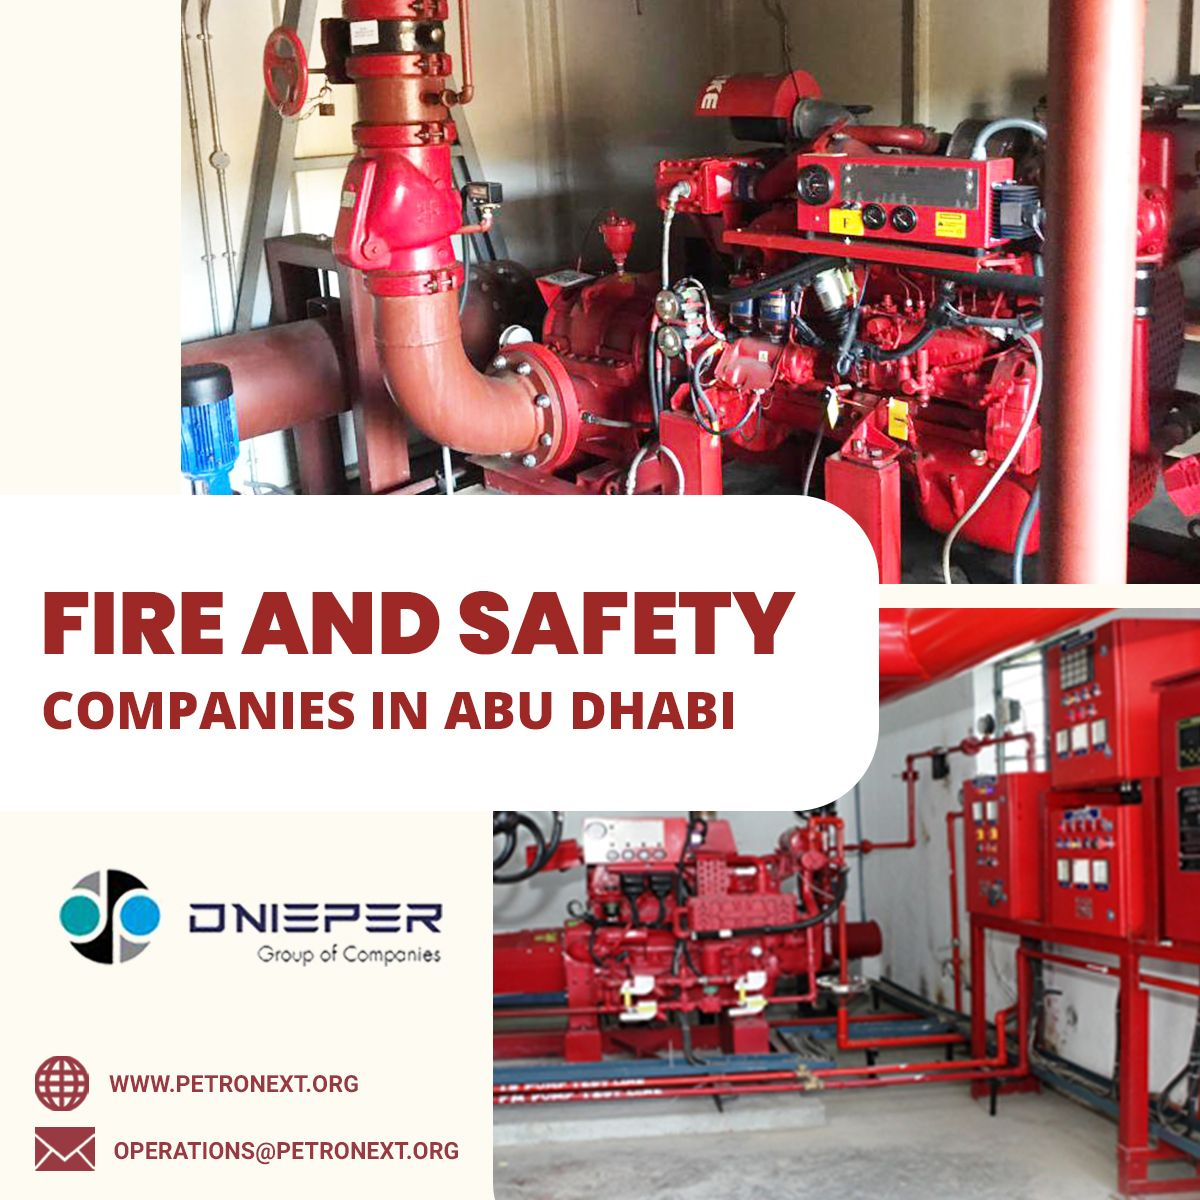 If You Are Looking For Fire And Safety Companies In Abu